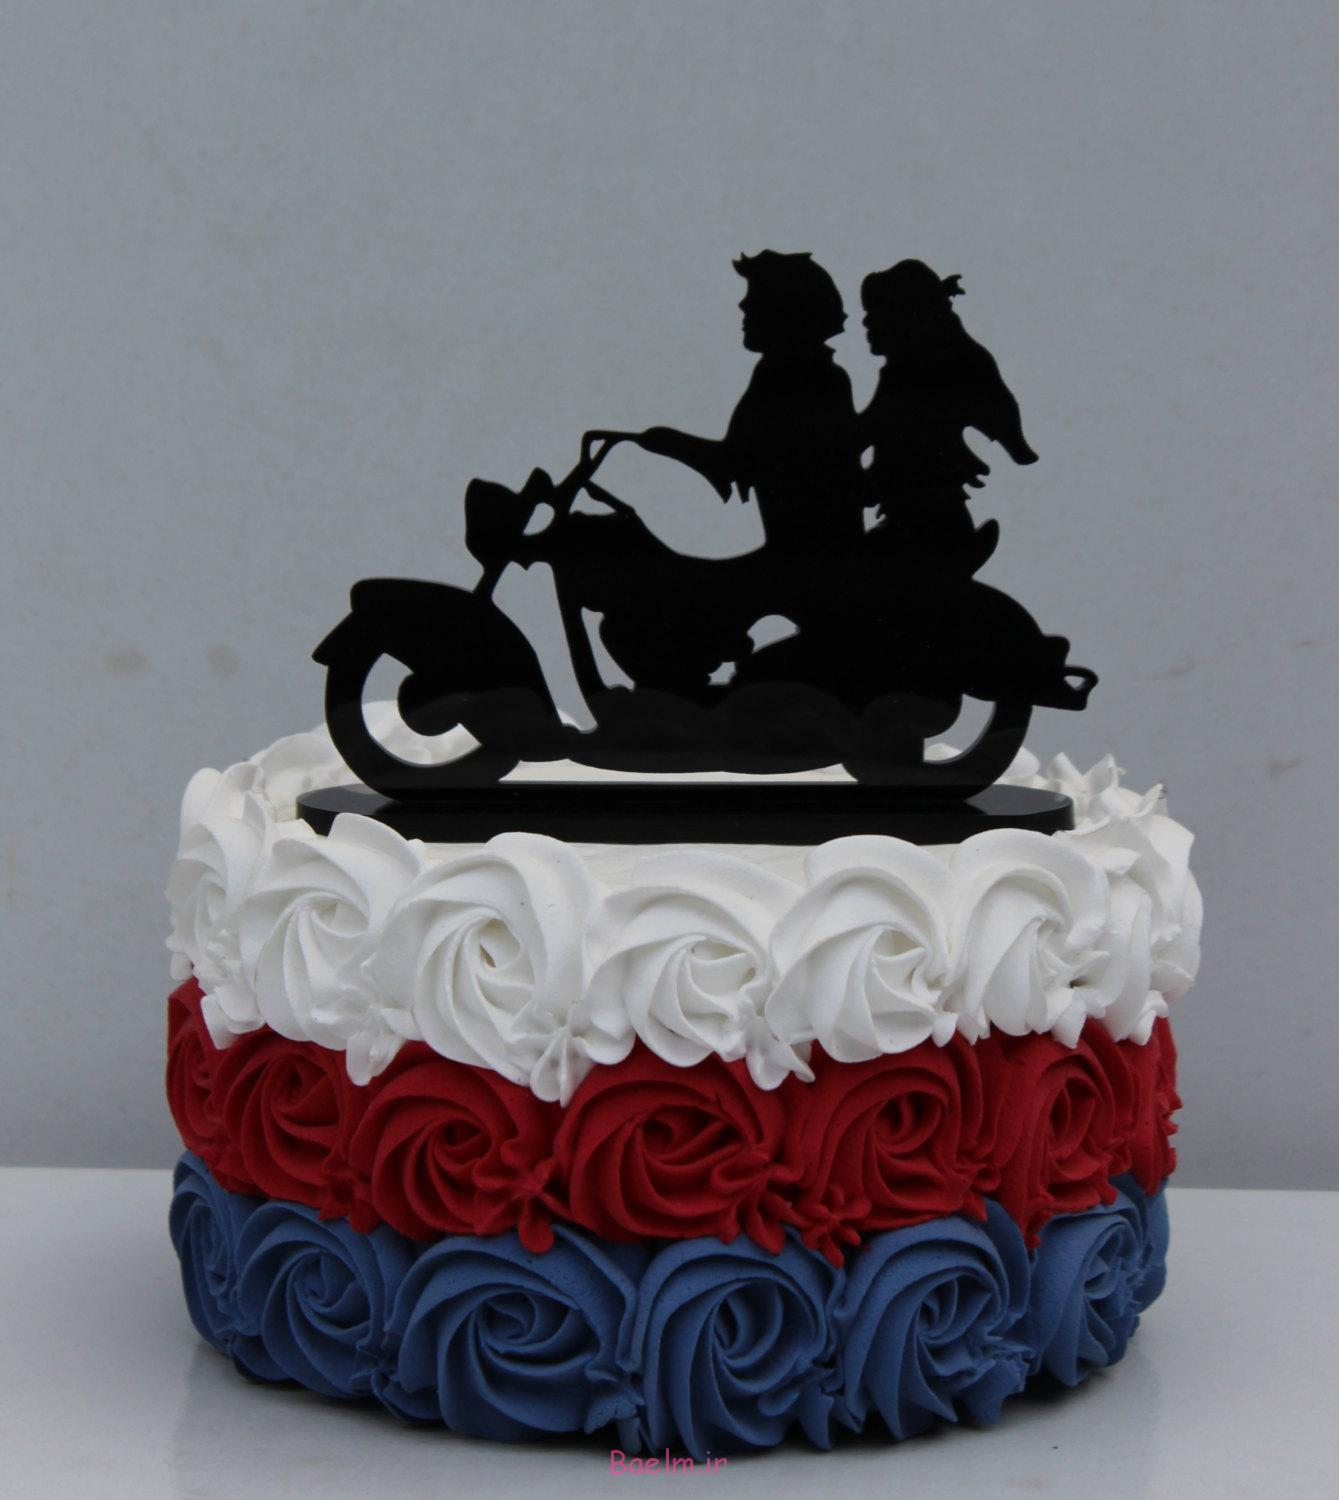 motorcycle-wedding-cake-toppers-ideas-popular-items-for-motorcycle-wedding-on-etsy1